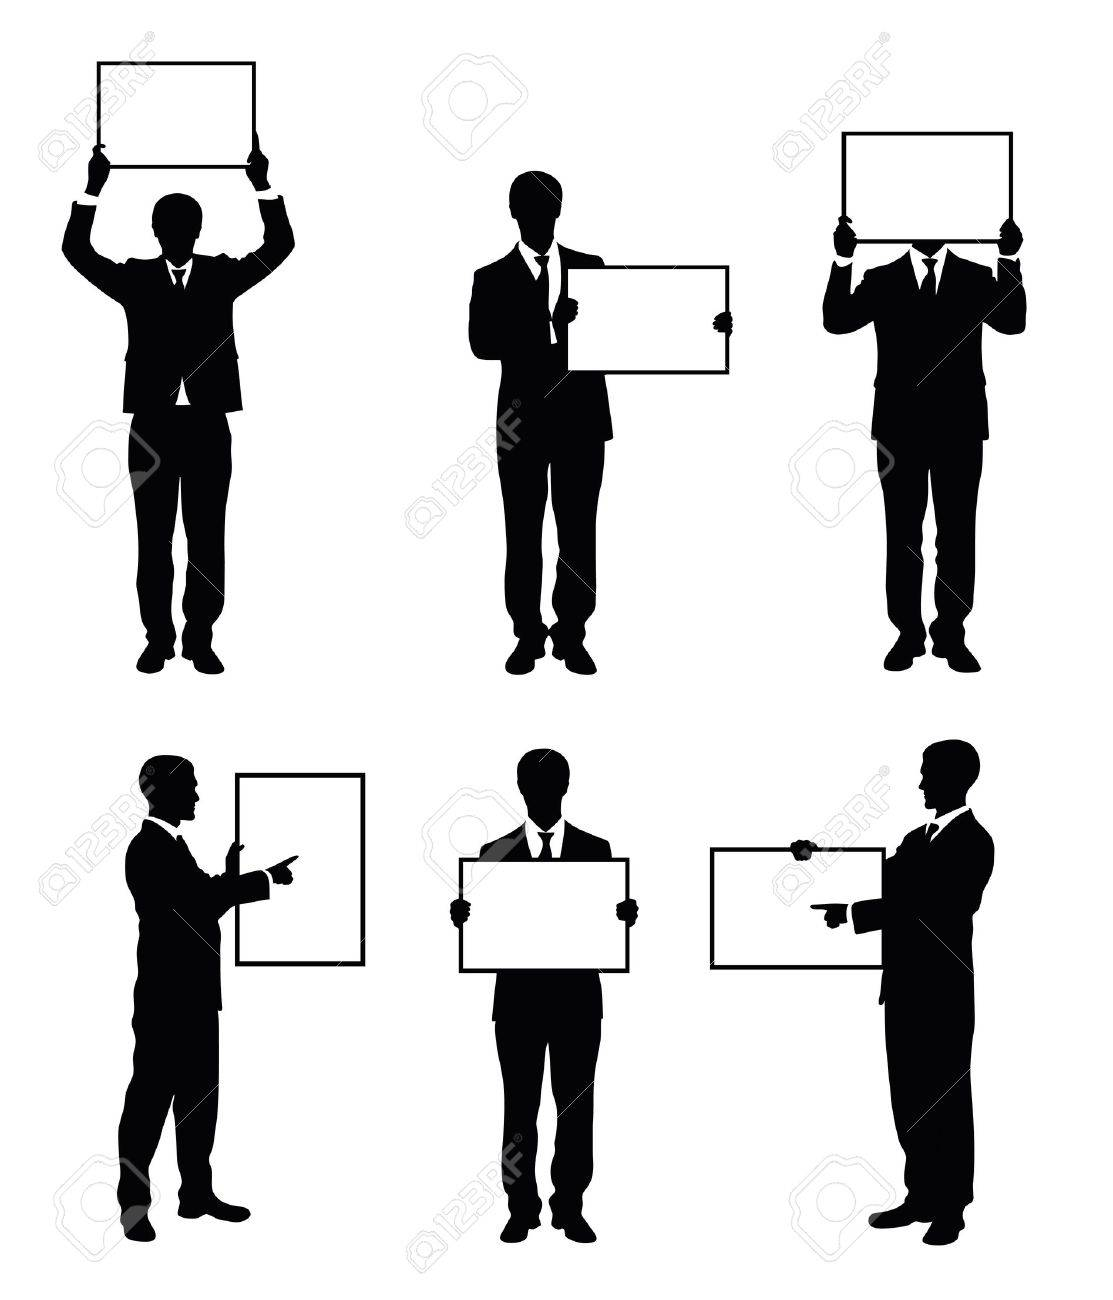 Set of silhouettes of a businessman holding a board. Stock Vector - 15399406